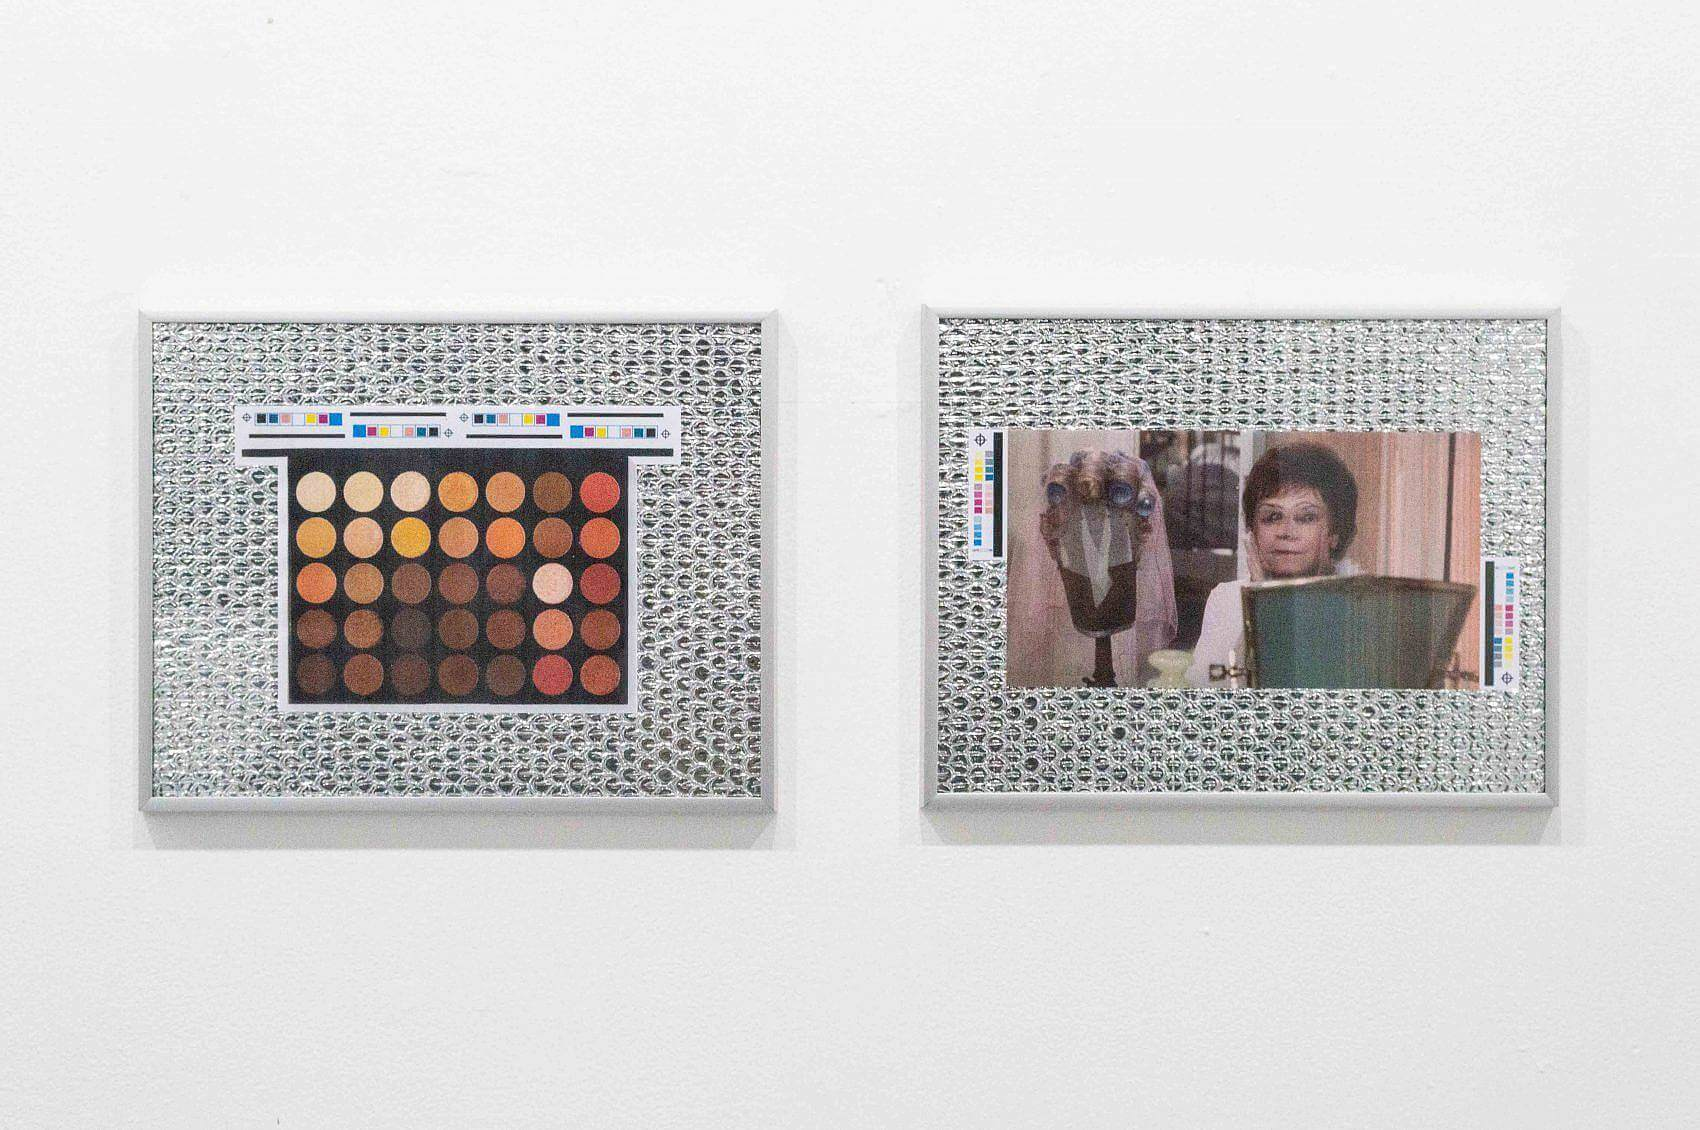 There are two framed collages side by side. Both contain images backed by silver freezer insulation. In the frame to the left is a 35-circle pan eyeshadow palette with warm-toned shades of brown, orange, yellow, red, and tan. In the frame to the right is a woman in a pink room facing the viewer with a turquoise mirror in front of her and a curly wig on a wig stand next to her.